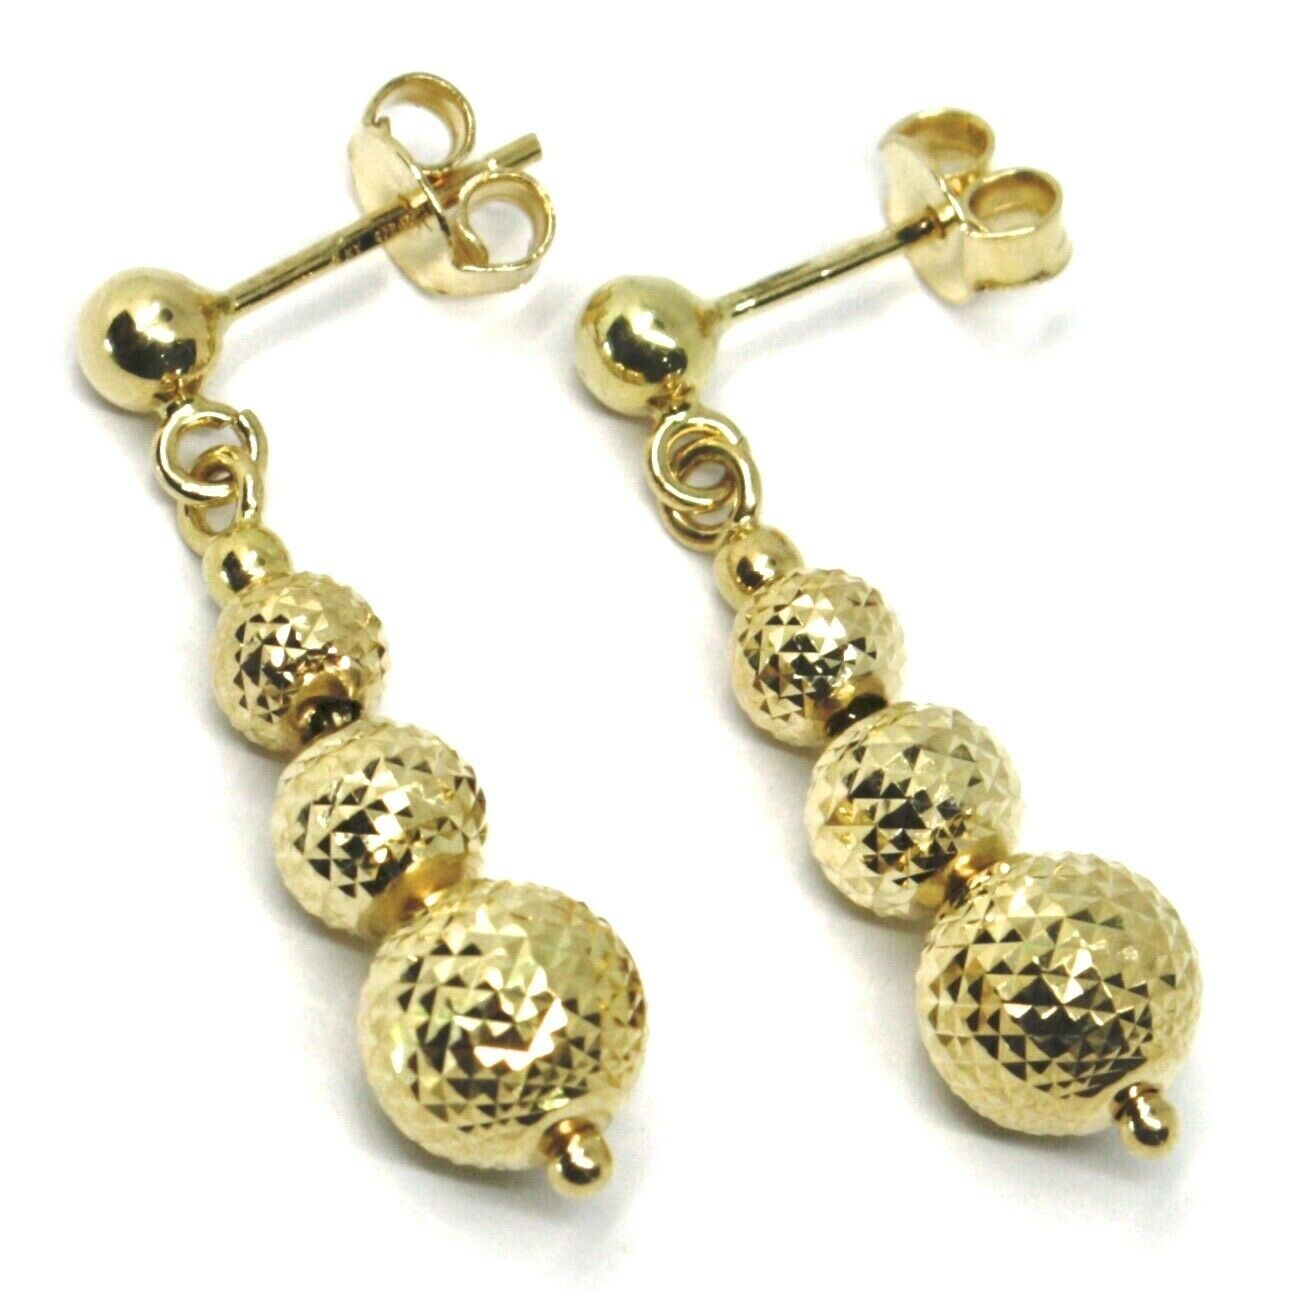 18K YELLOW GOLD PENDANT EARRINGS WORKED SPHERES 5-6-8 MM DIAMOND CUT, FACETED